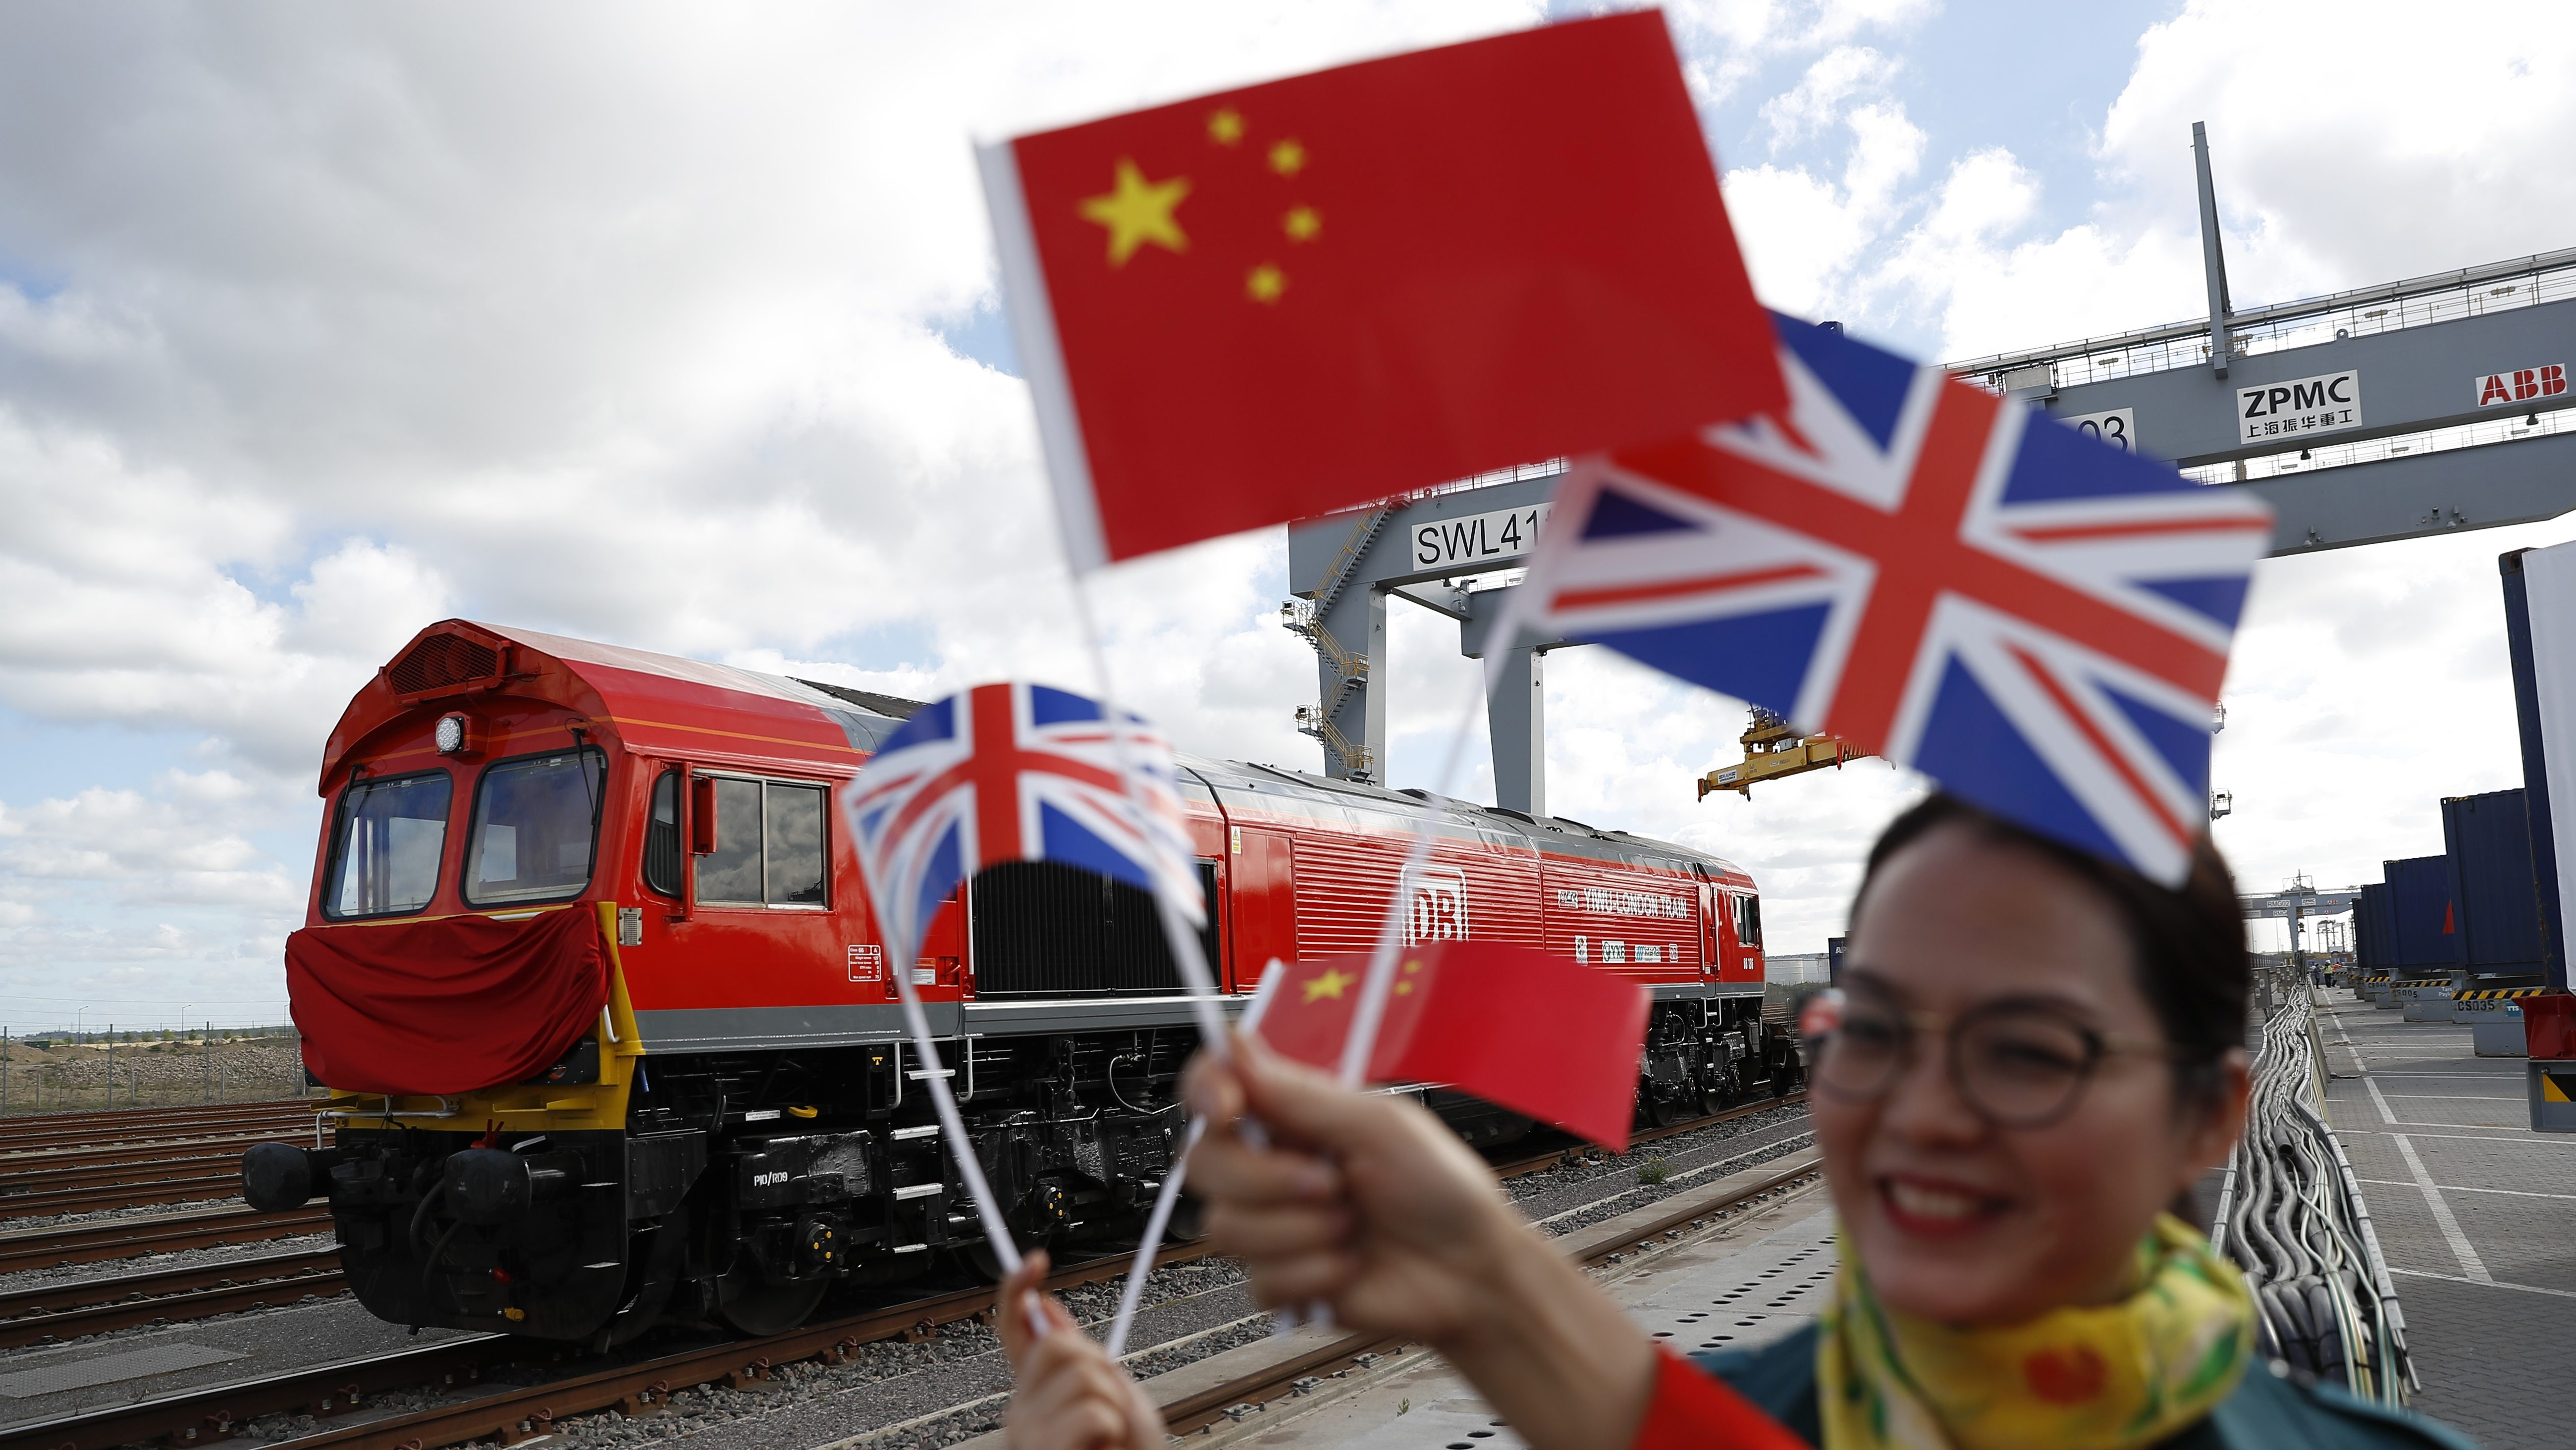 Chinese women wave flags at the official ceremony to mark the departure of the first UK to China export train, laden with containers of British goods, from the DP World London Gateway, Stanford-le-Hope, Britain April 10, 2017. REUTERS/Peter Nicholls